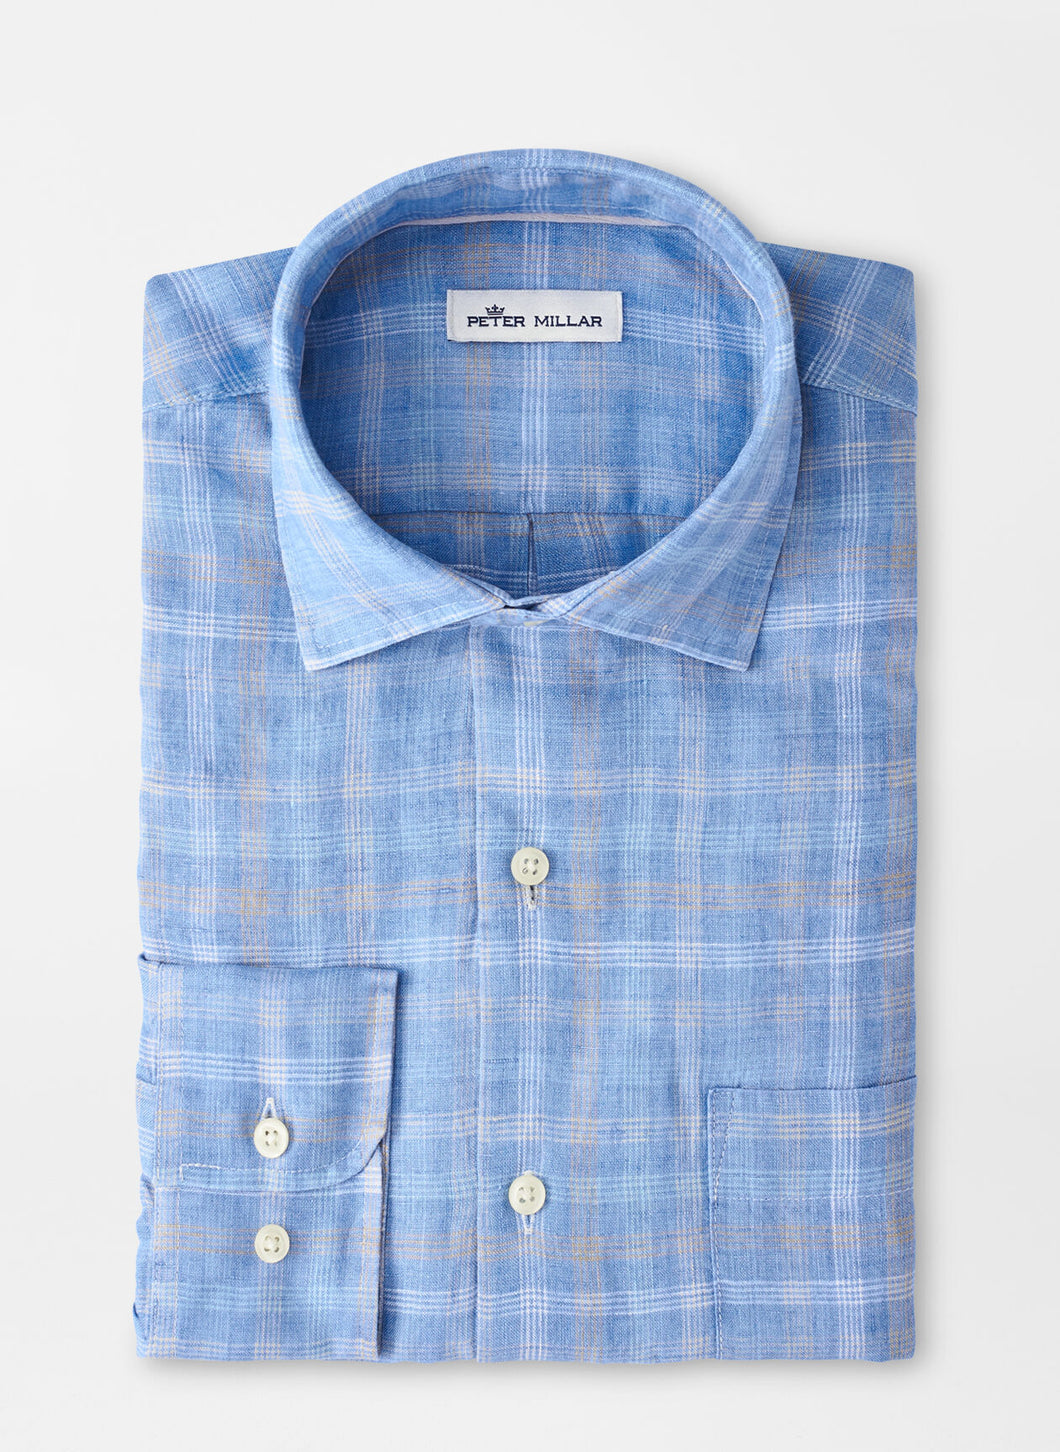 Peter Millar Duxbury Beach Linen Sport Shirt in Coastal Blue